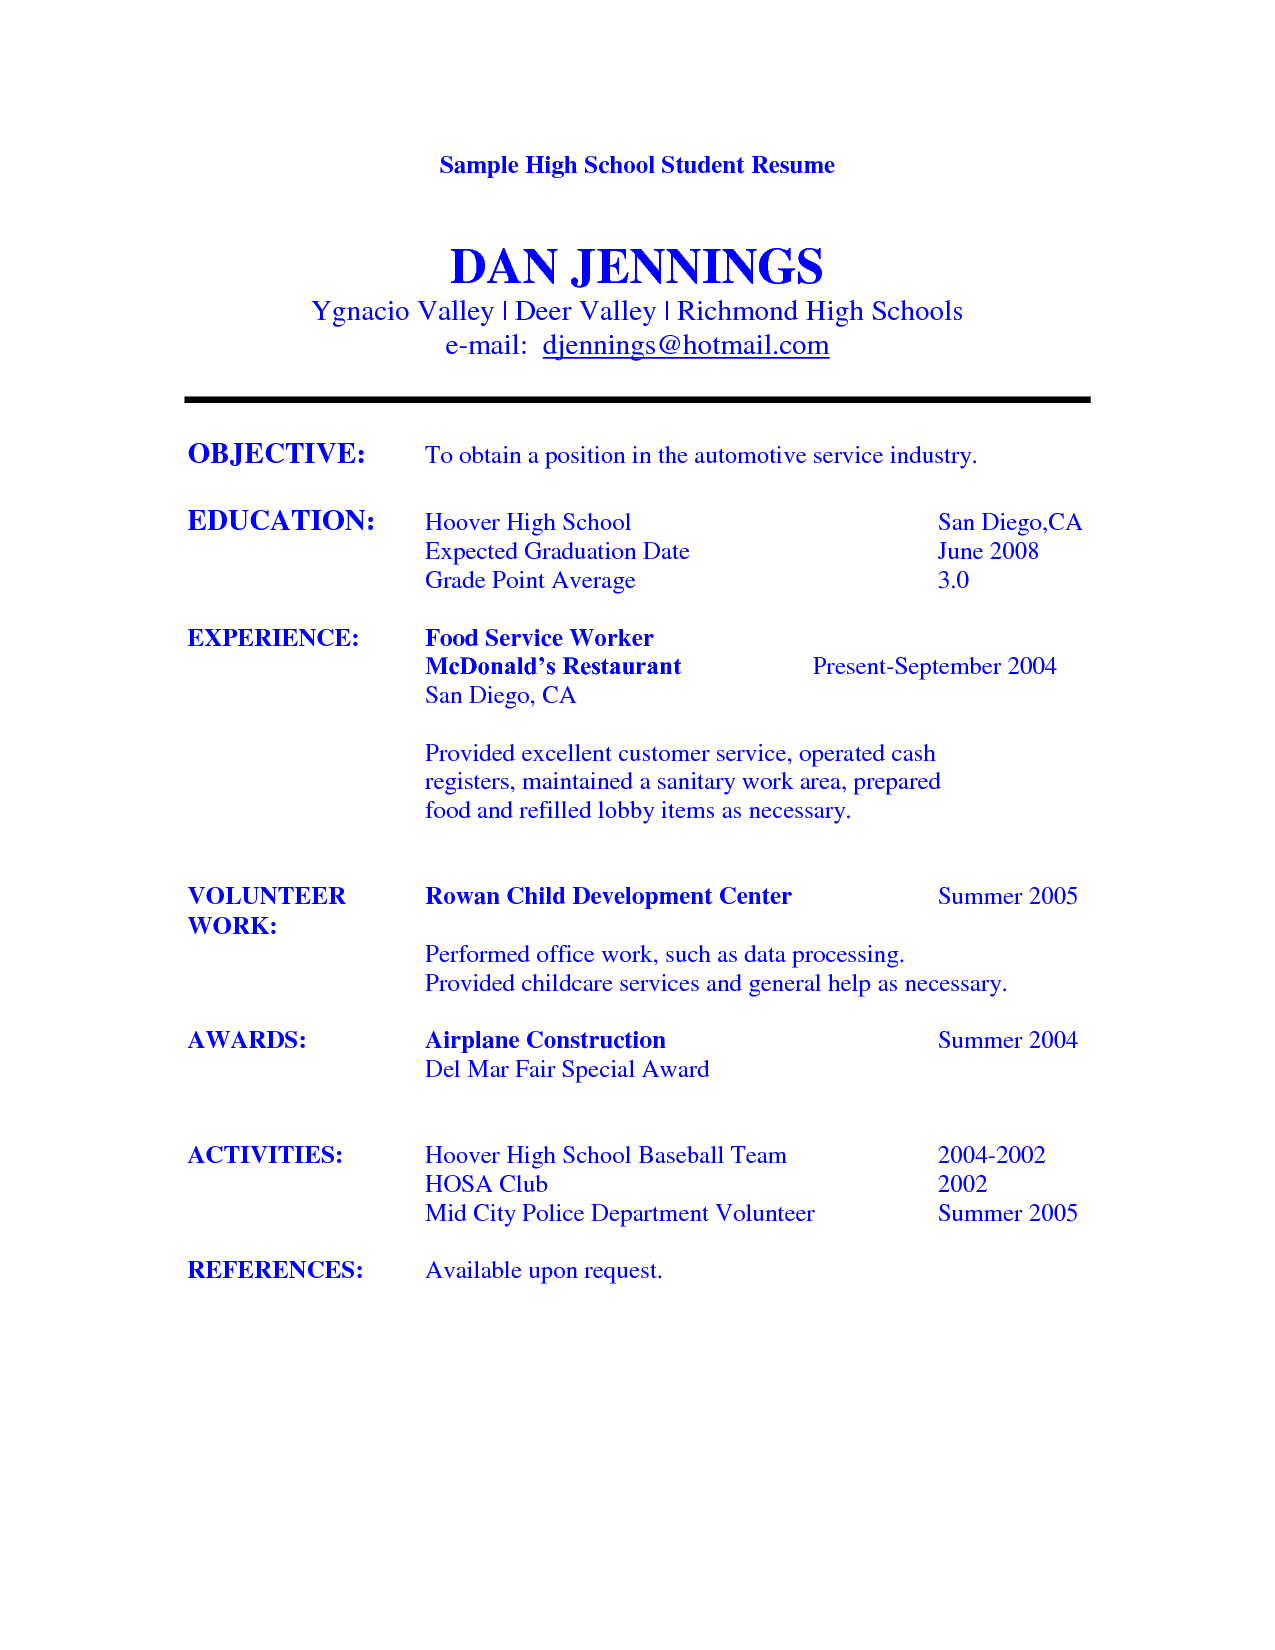 Resume writing for high school students questions